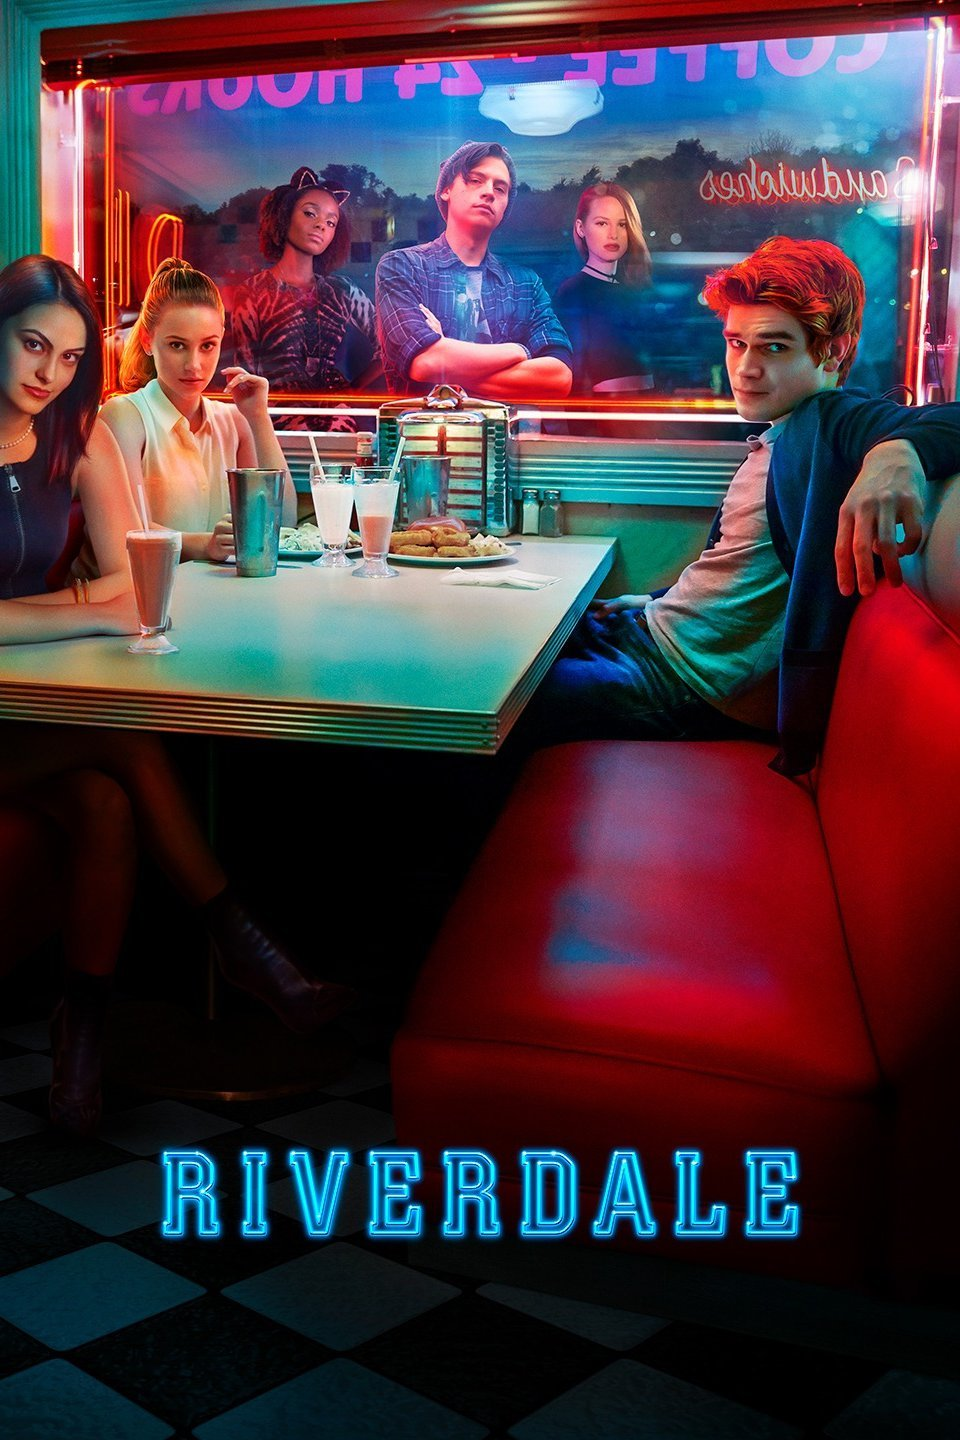 Riverdale Season 1 Episode 10 Download 480p WEB-DL 150MB